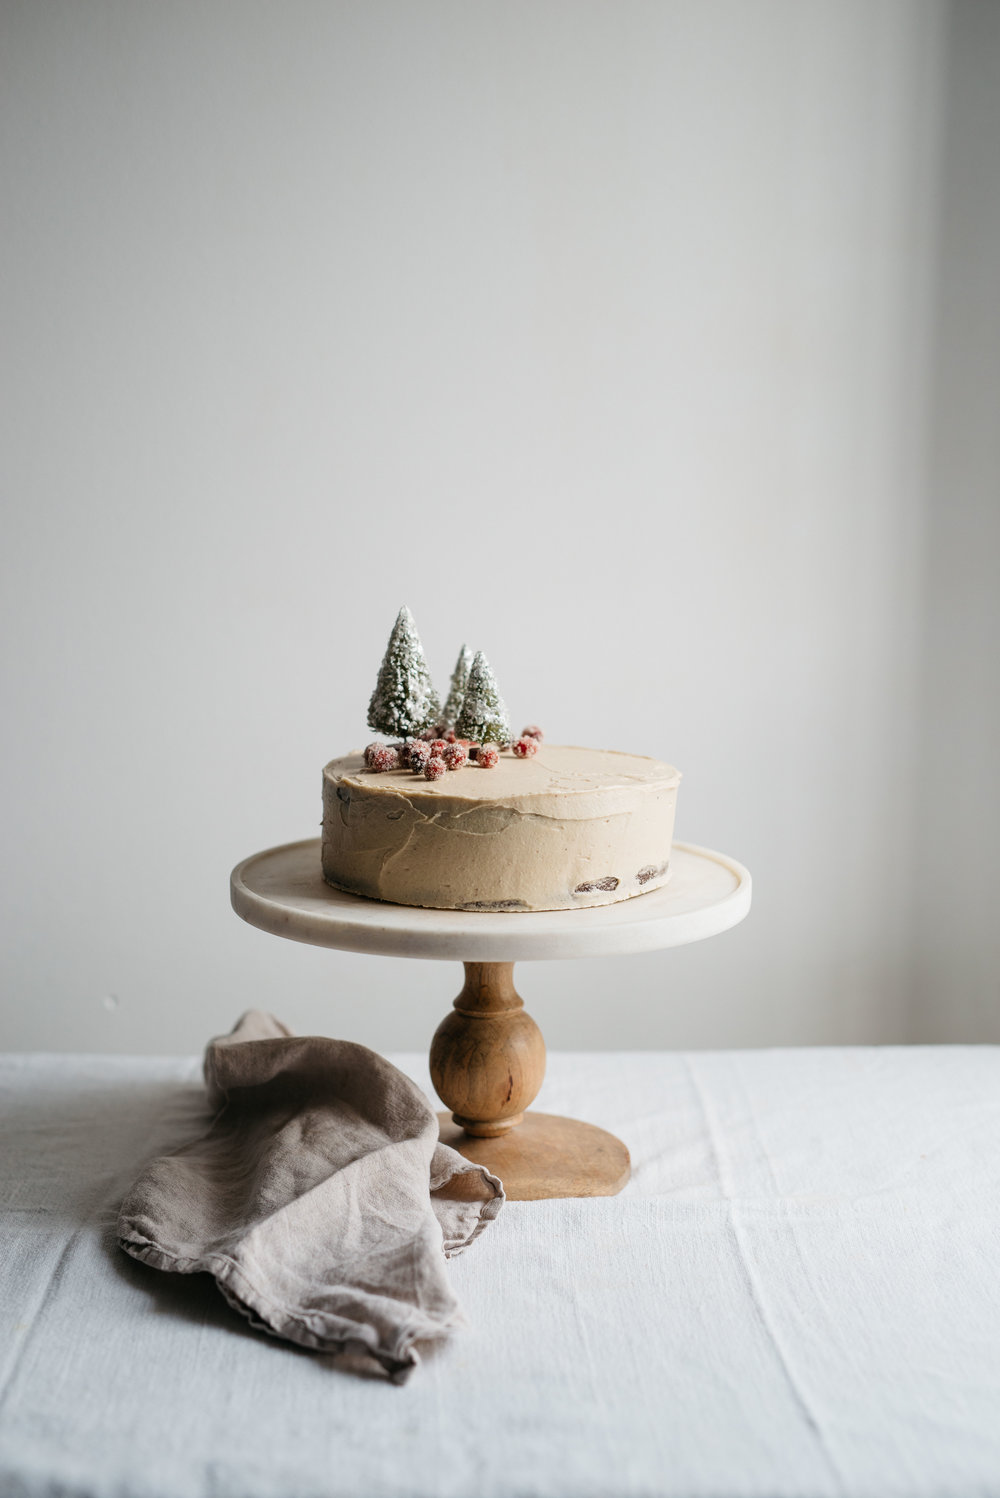 Molly's Chocolate Tahini Cake w/ Tahini Frosting | dolly and oatmeal